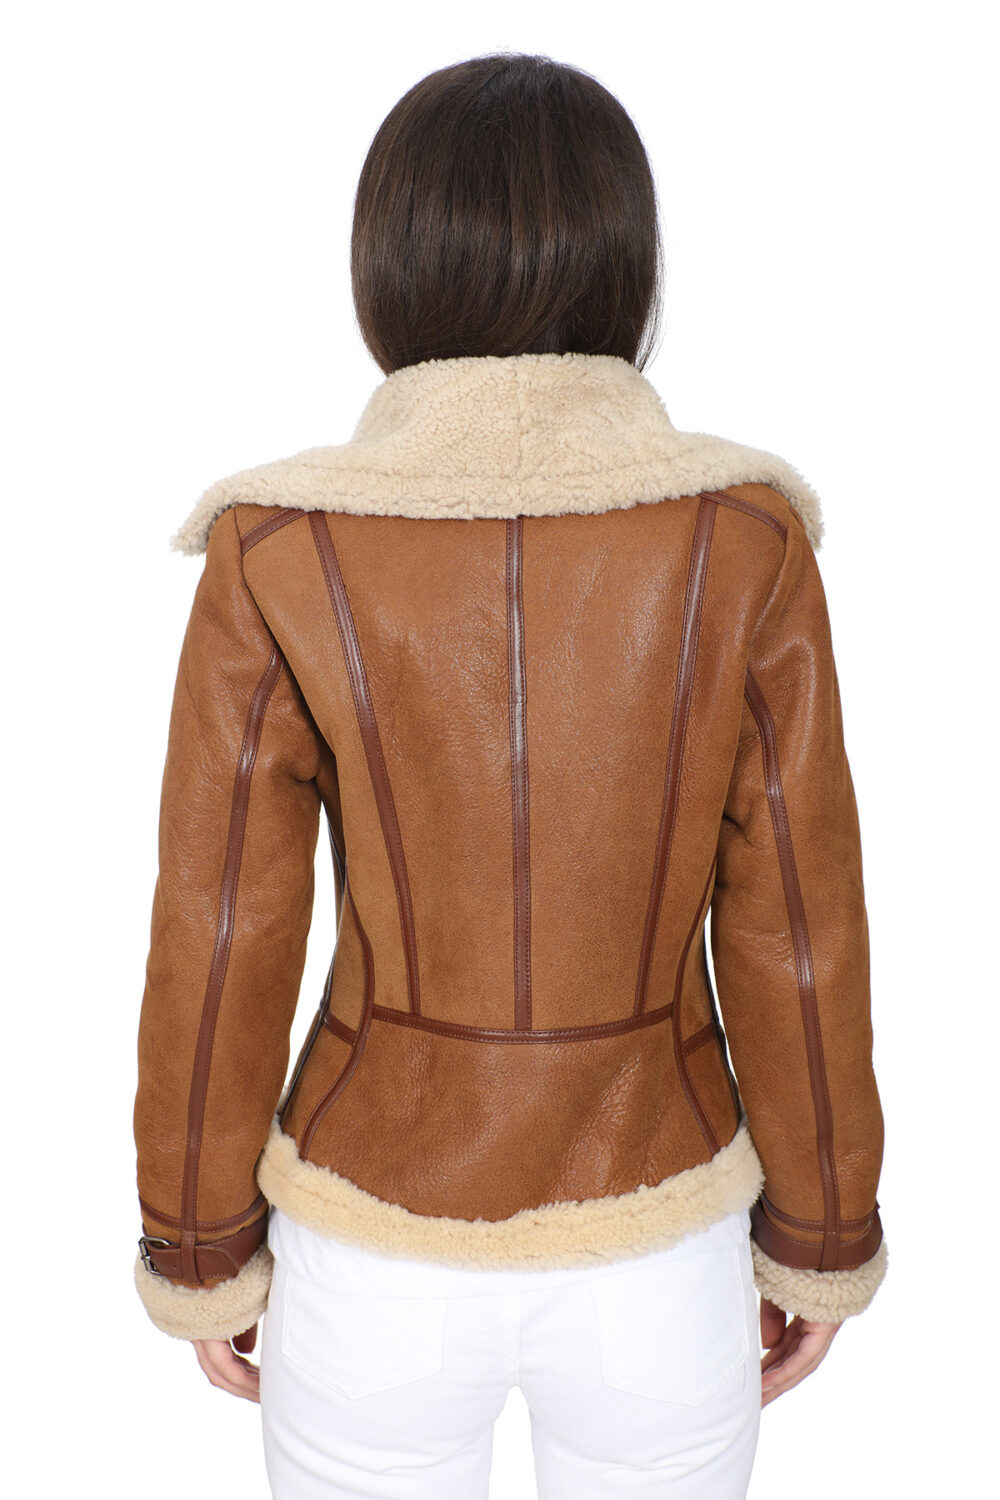 Cheap Leather Jackets Womens